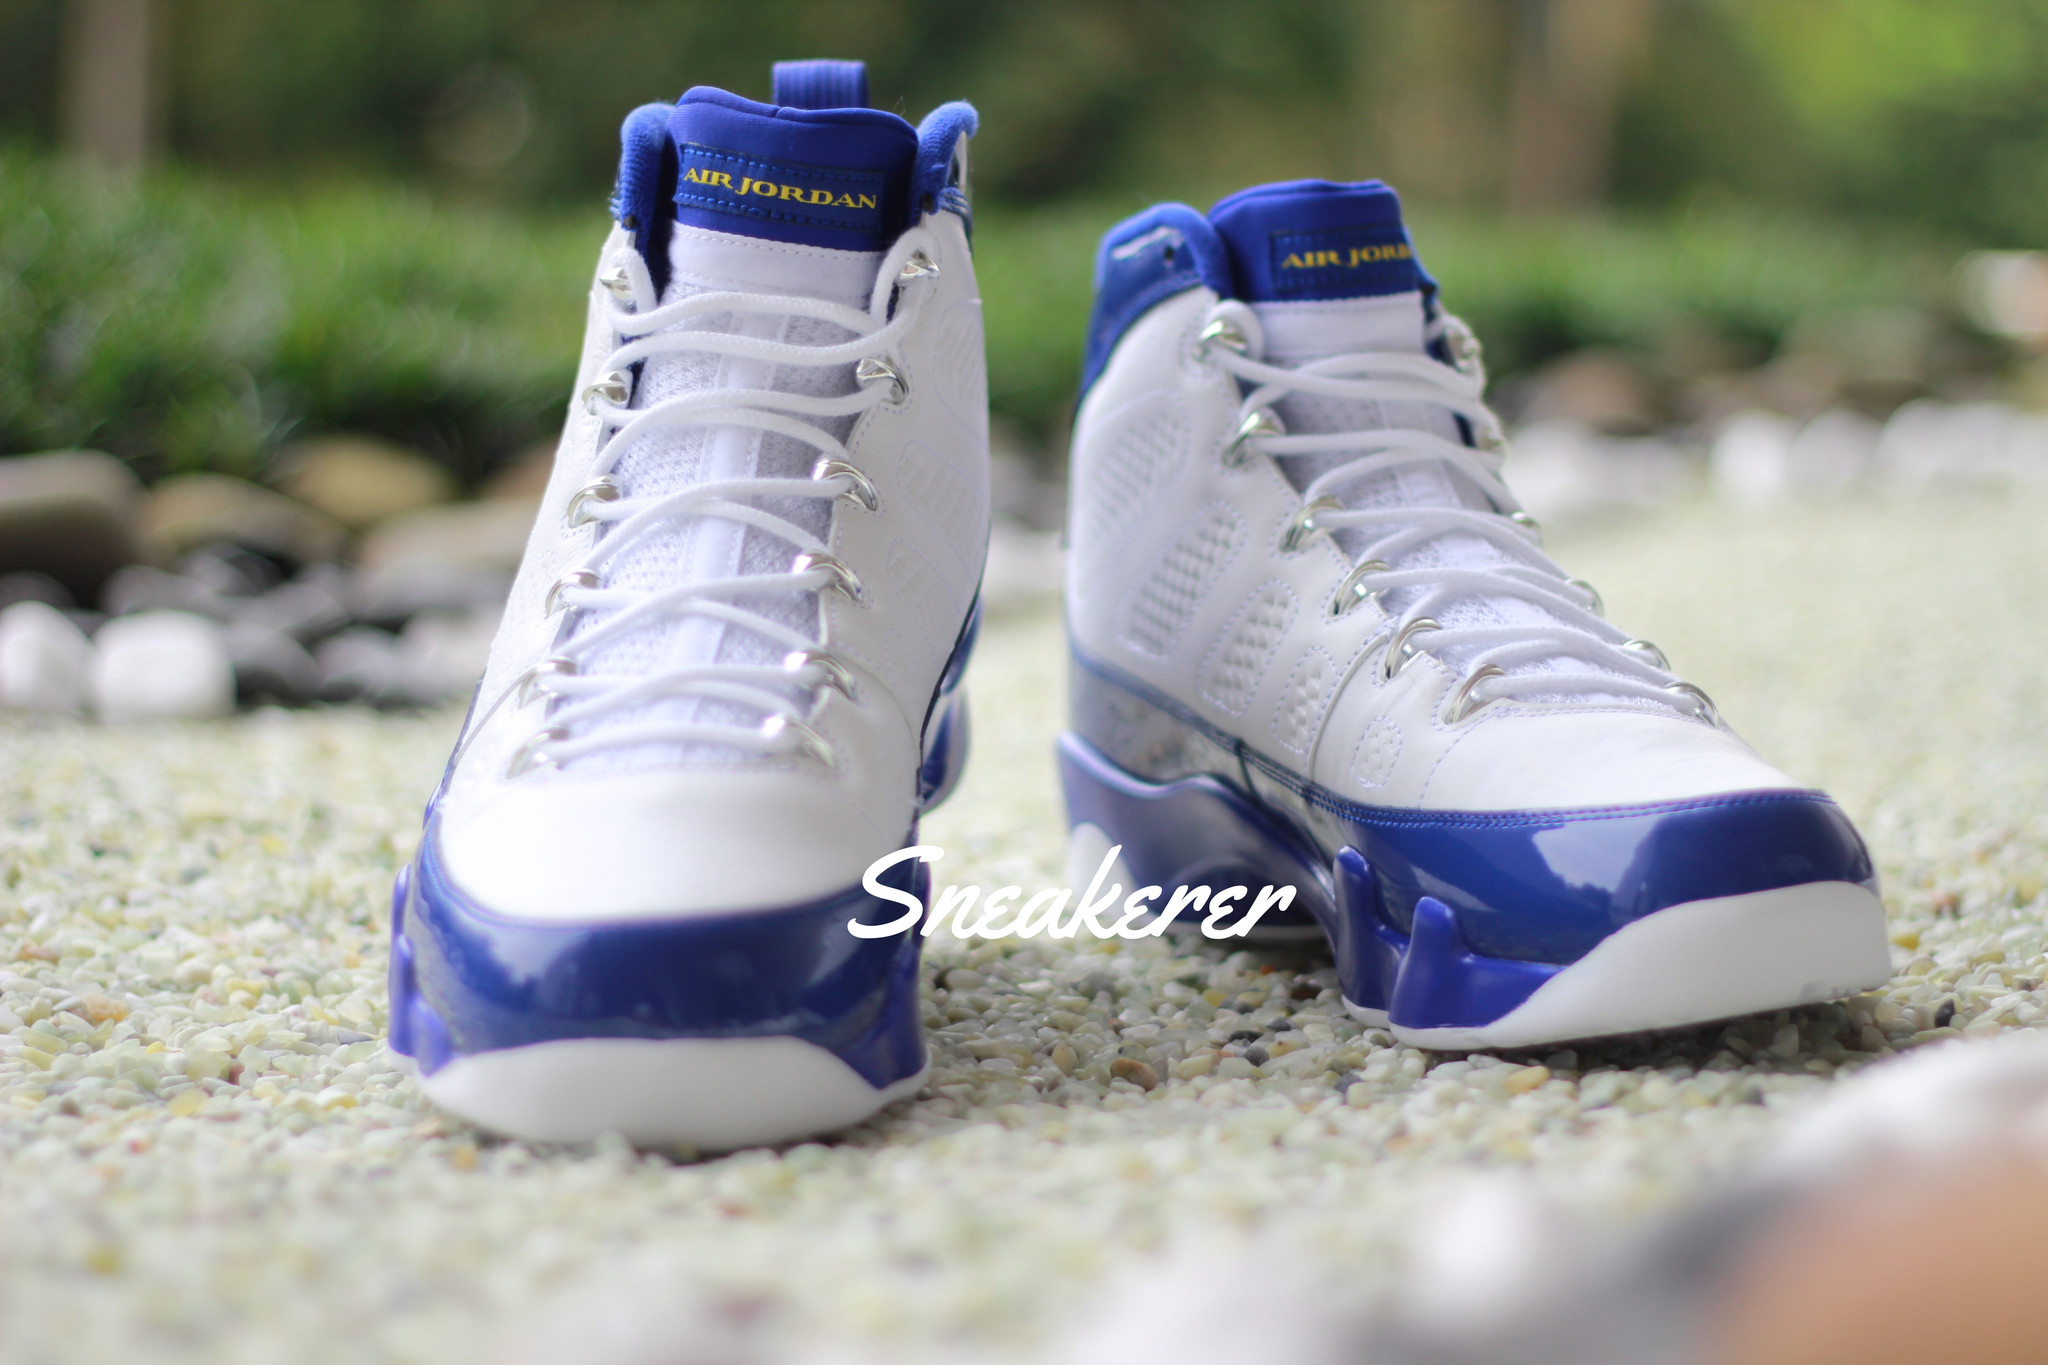 927df93f596 Air Jordan 9 Kobe Bryant PE - New Images - Air 23 - Air Jordan ...